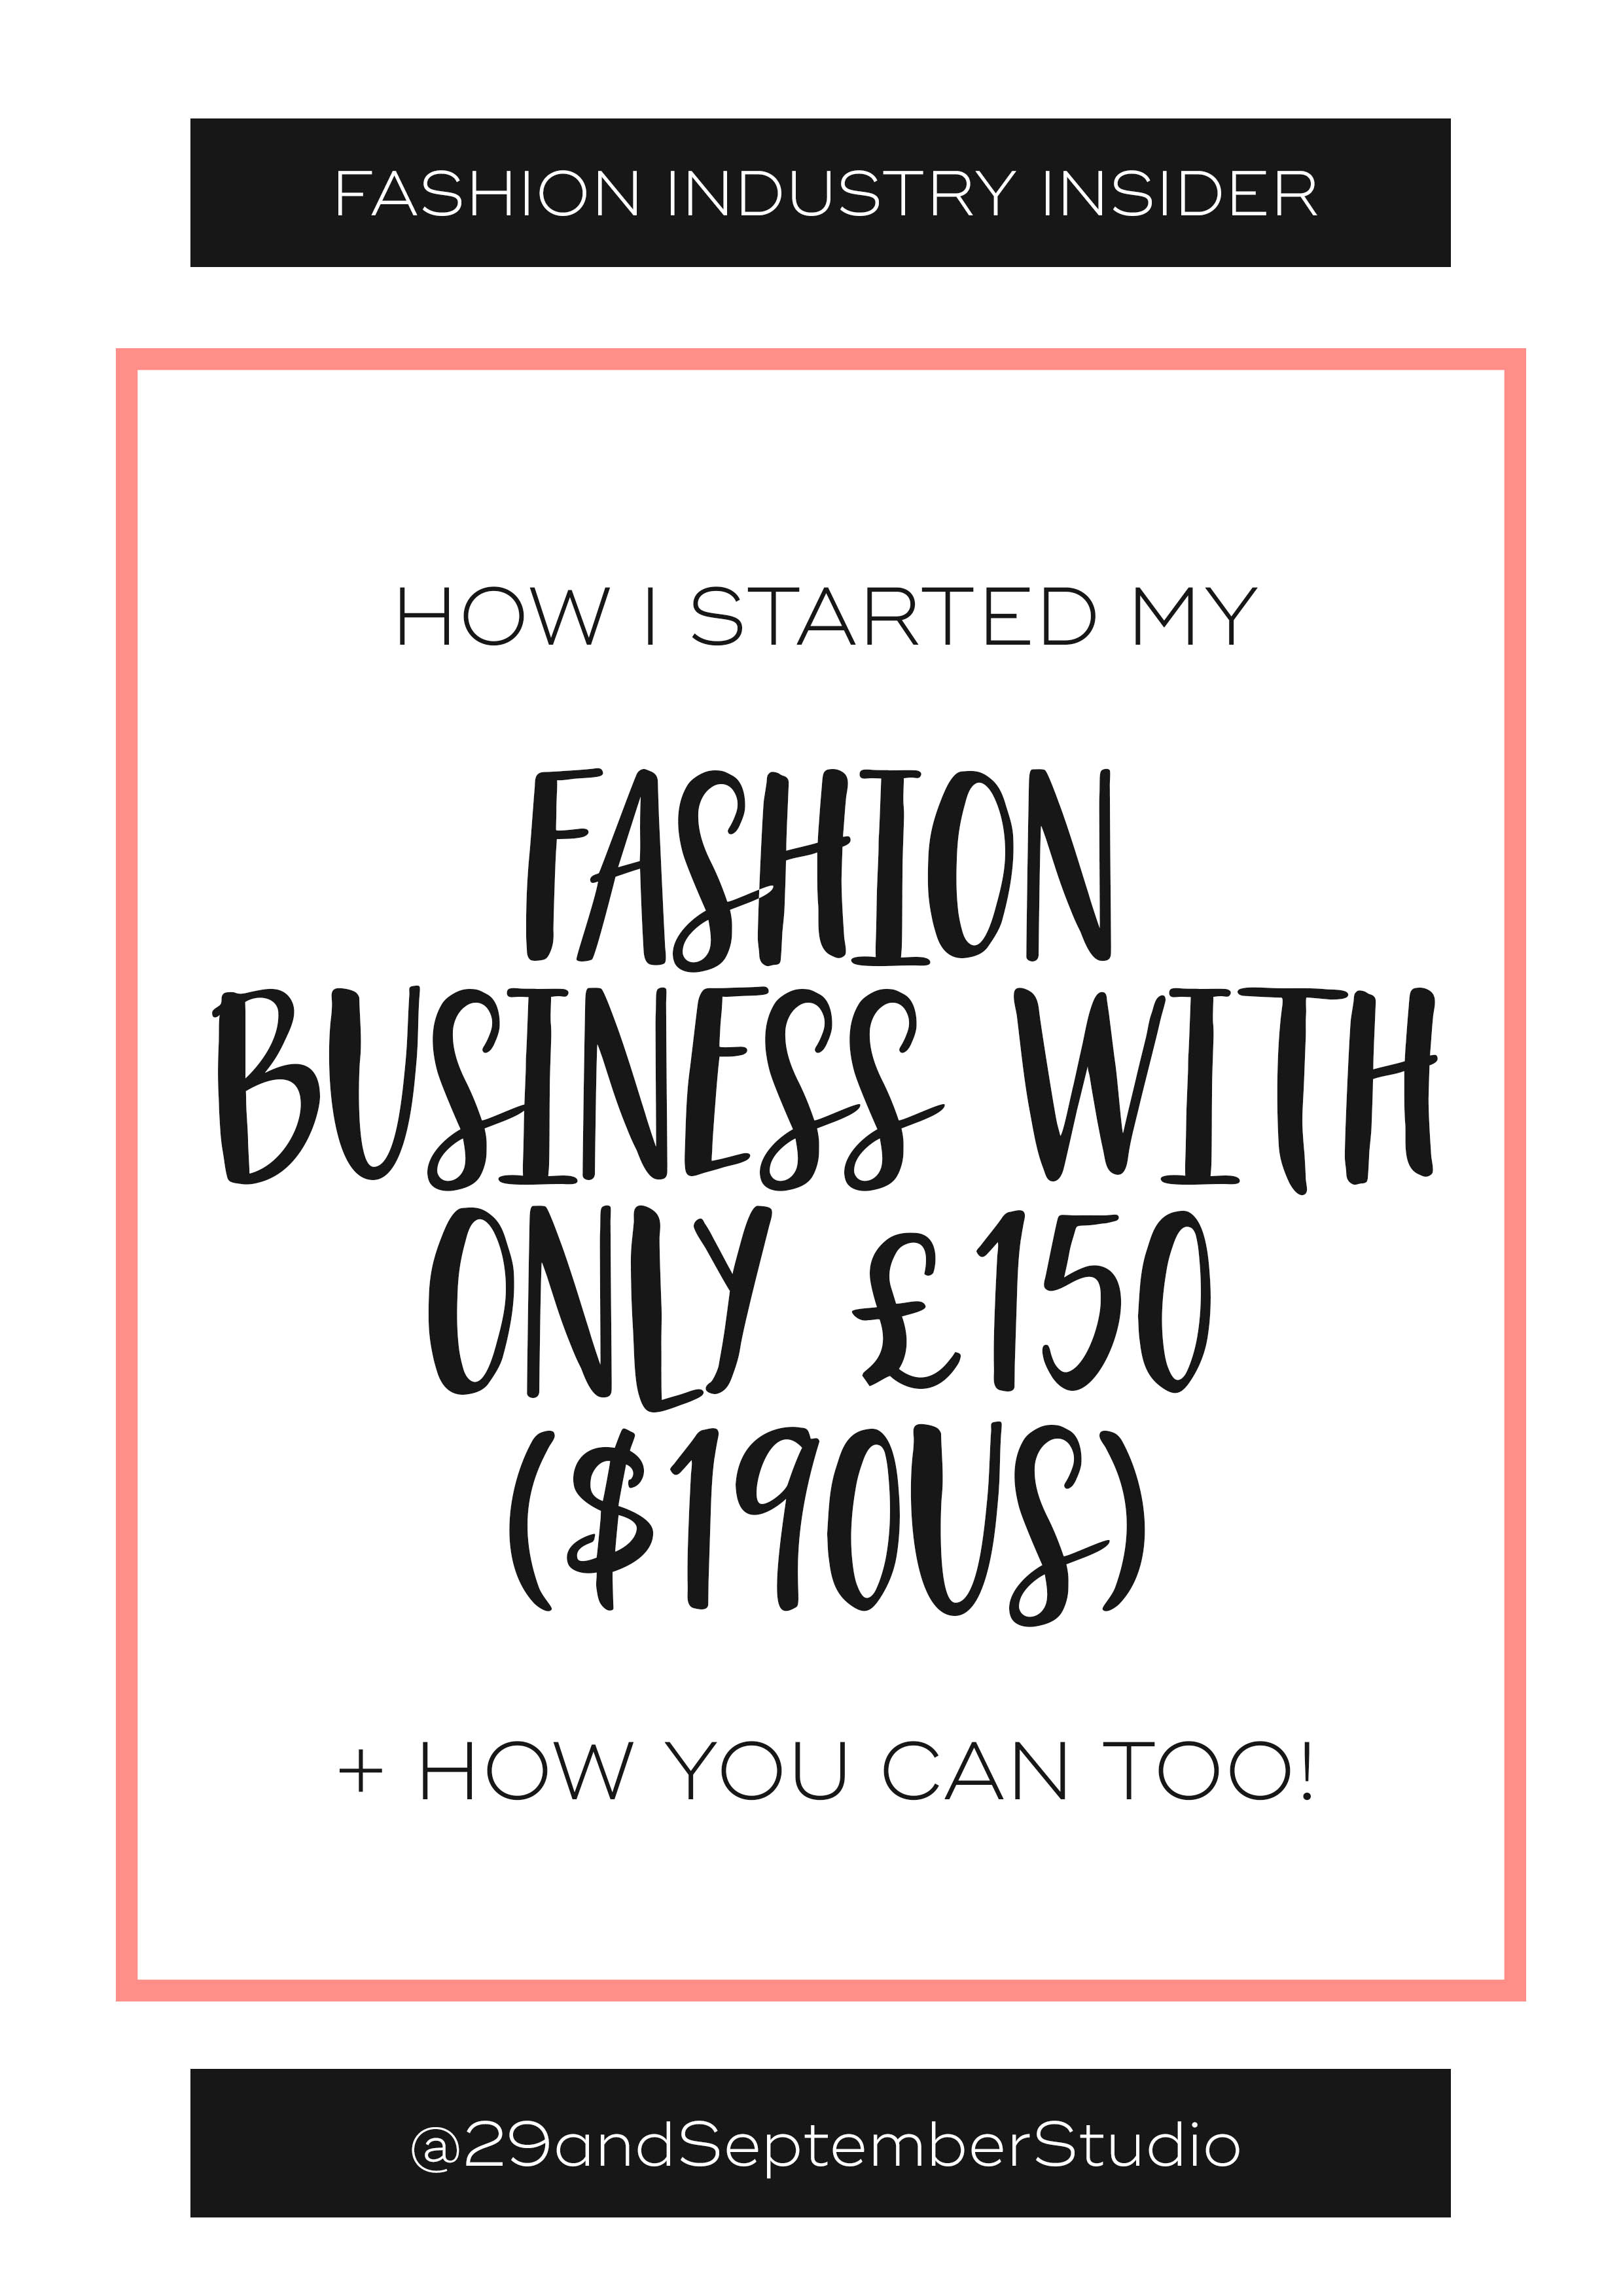 How to start a fashion company on a budget - I started a fashion brand with almost no money. Learn the cheapest way to start your fashion business